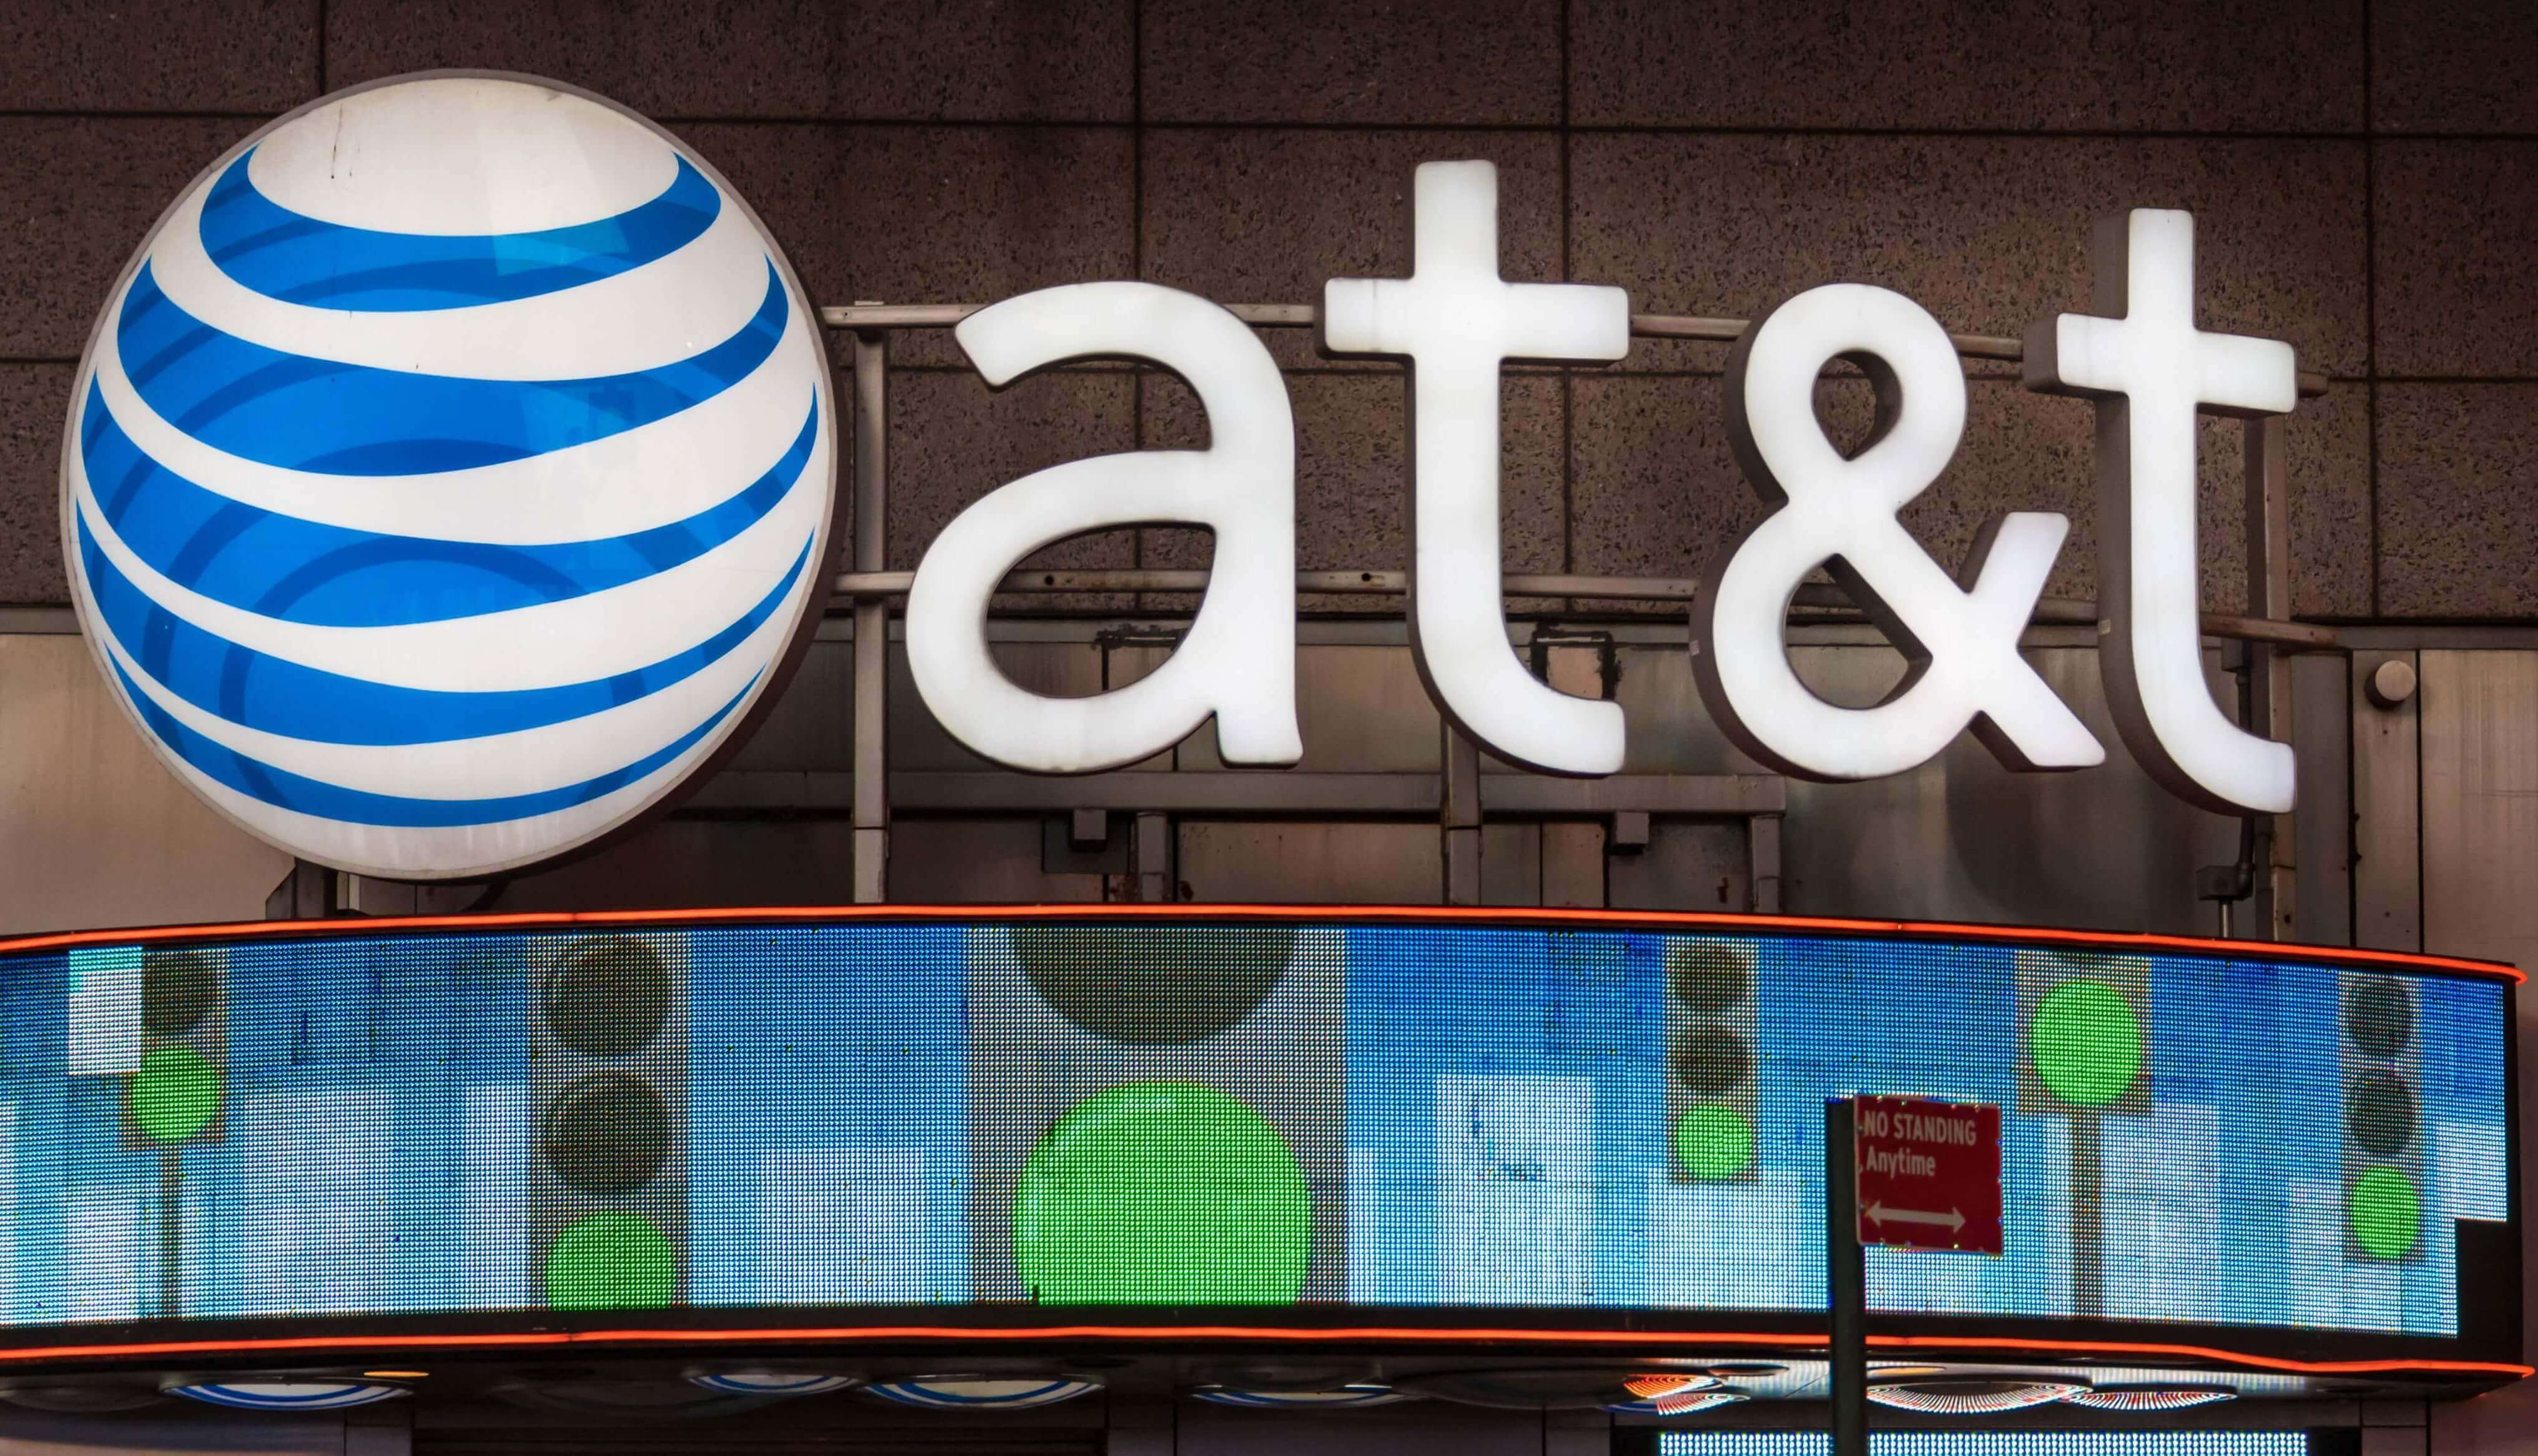 AT&T customers across the US lost 911 services for several hours